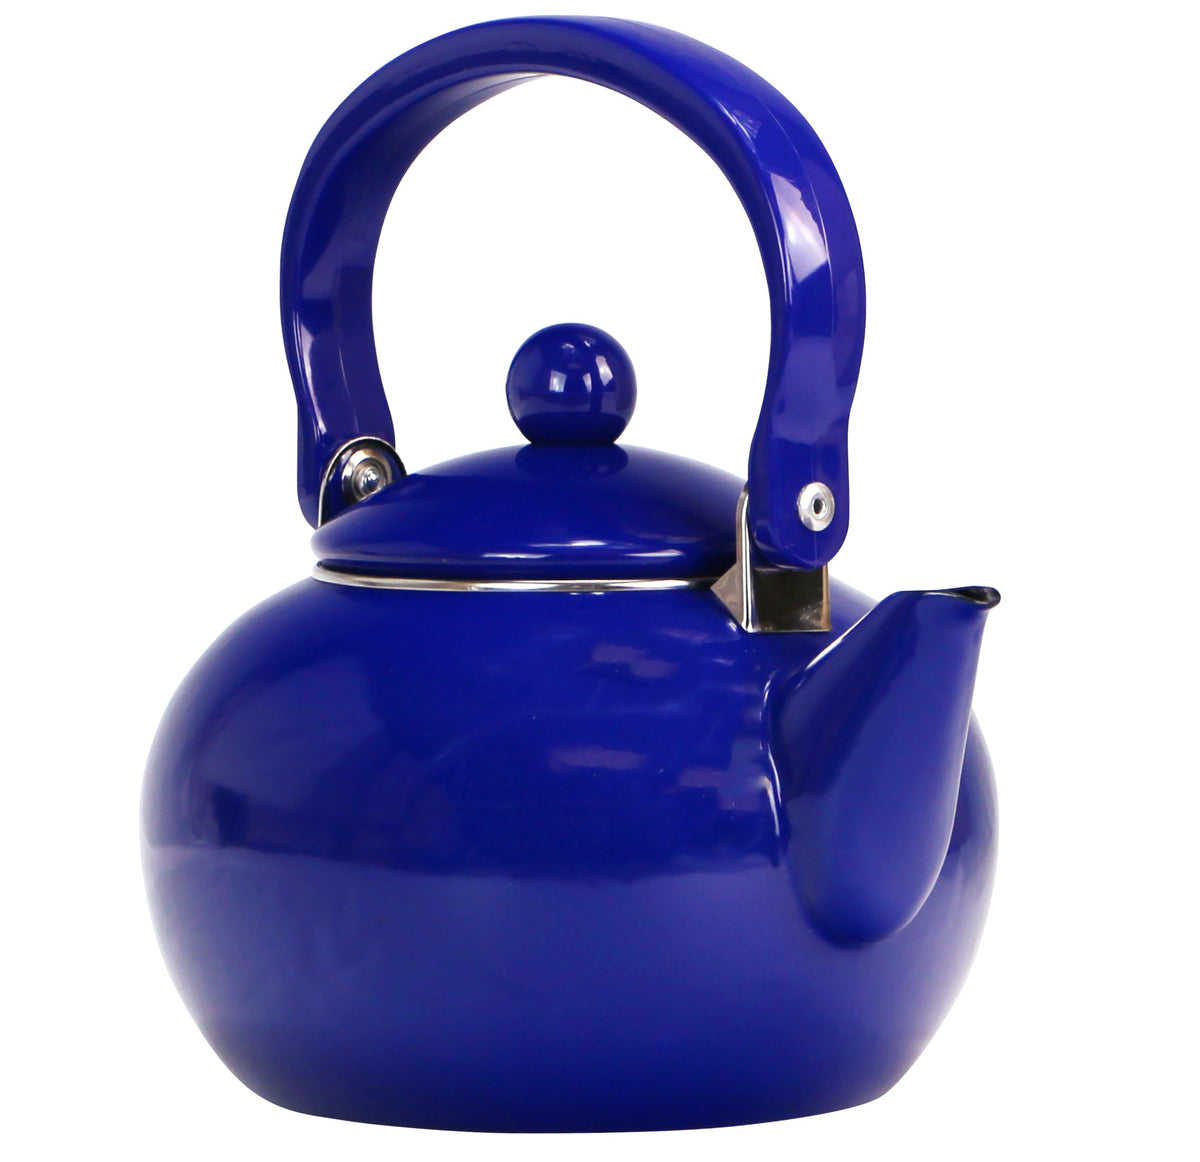 Reston Lloyd - Calypso Tea Kettle, 2-quart